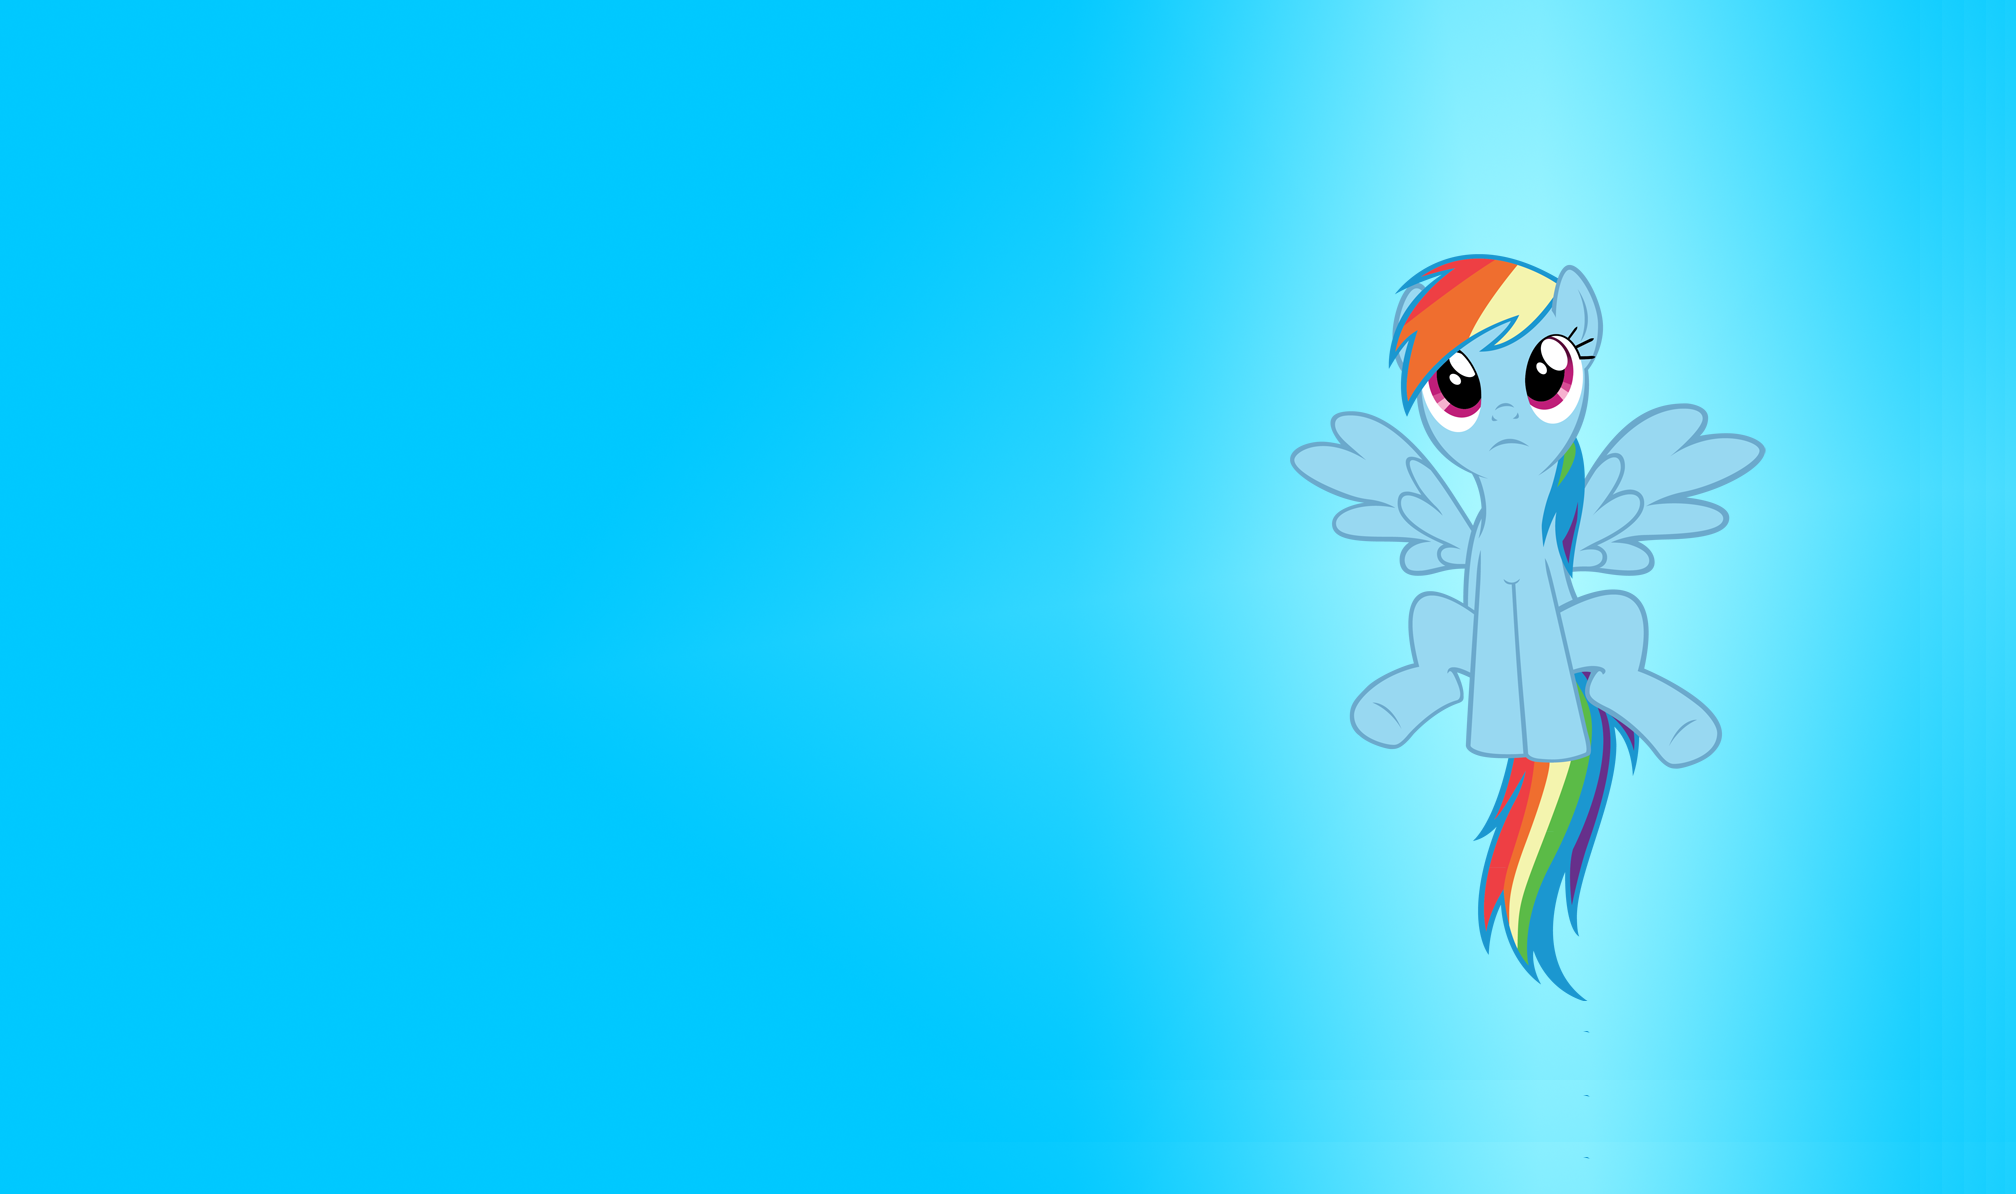 my little pony rainbow dash 1920x1080 wallpaper Art HD Wallpaper. elements my little pony my little pony friendship...